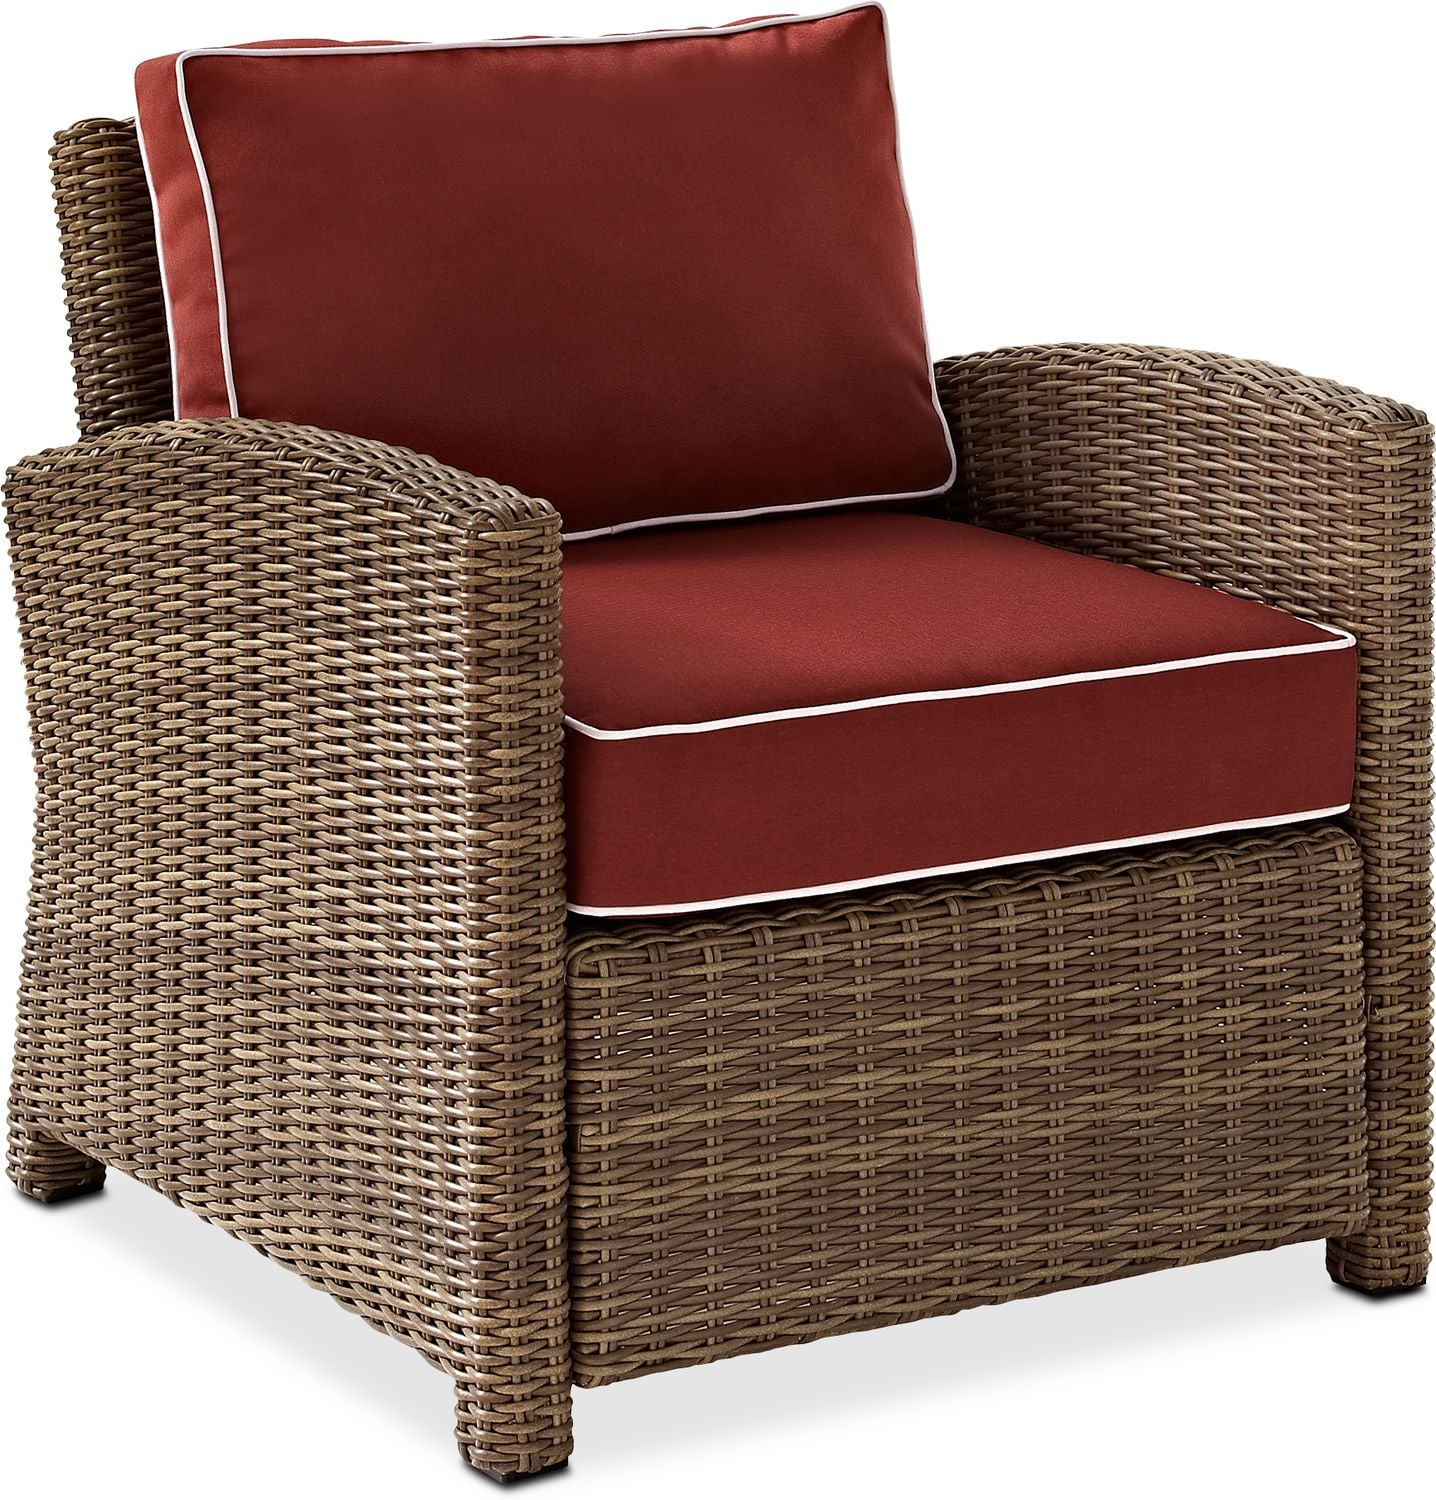 Destin Outdoor Loveseat 2 Chairs Cocktail Table and End Table